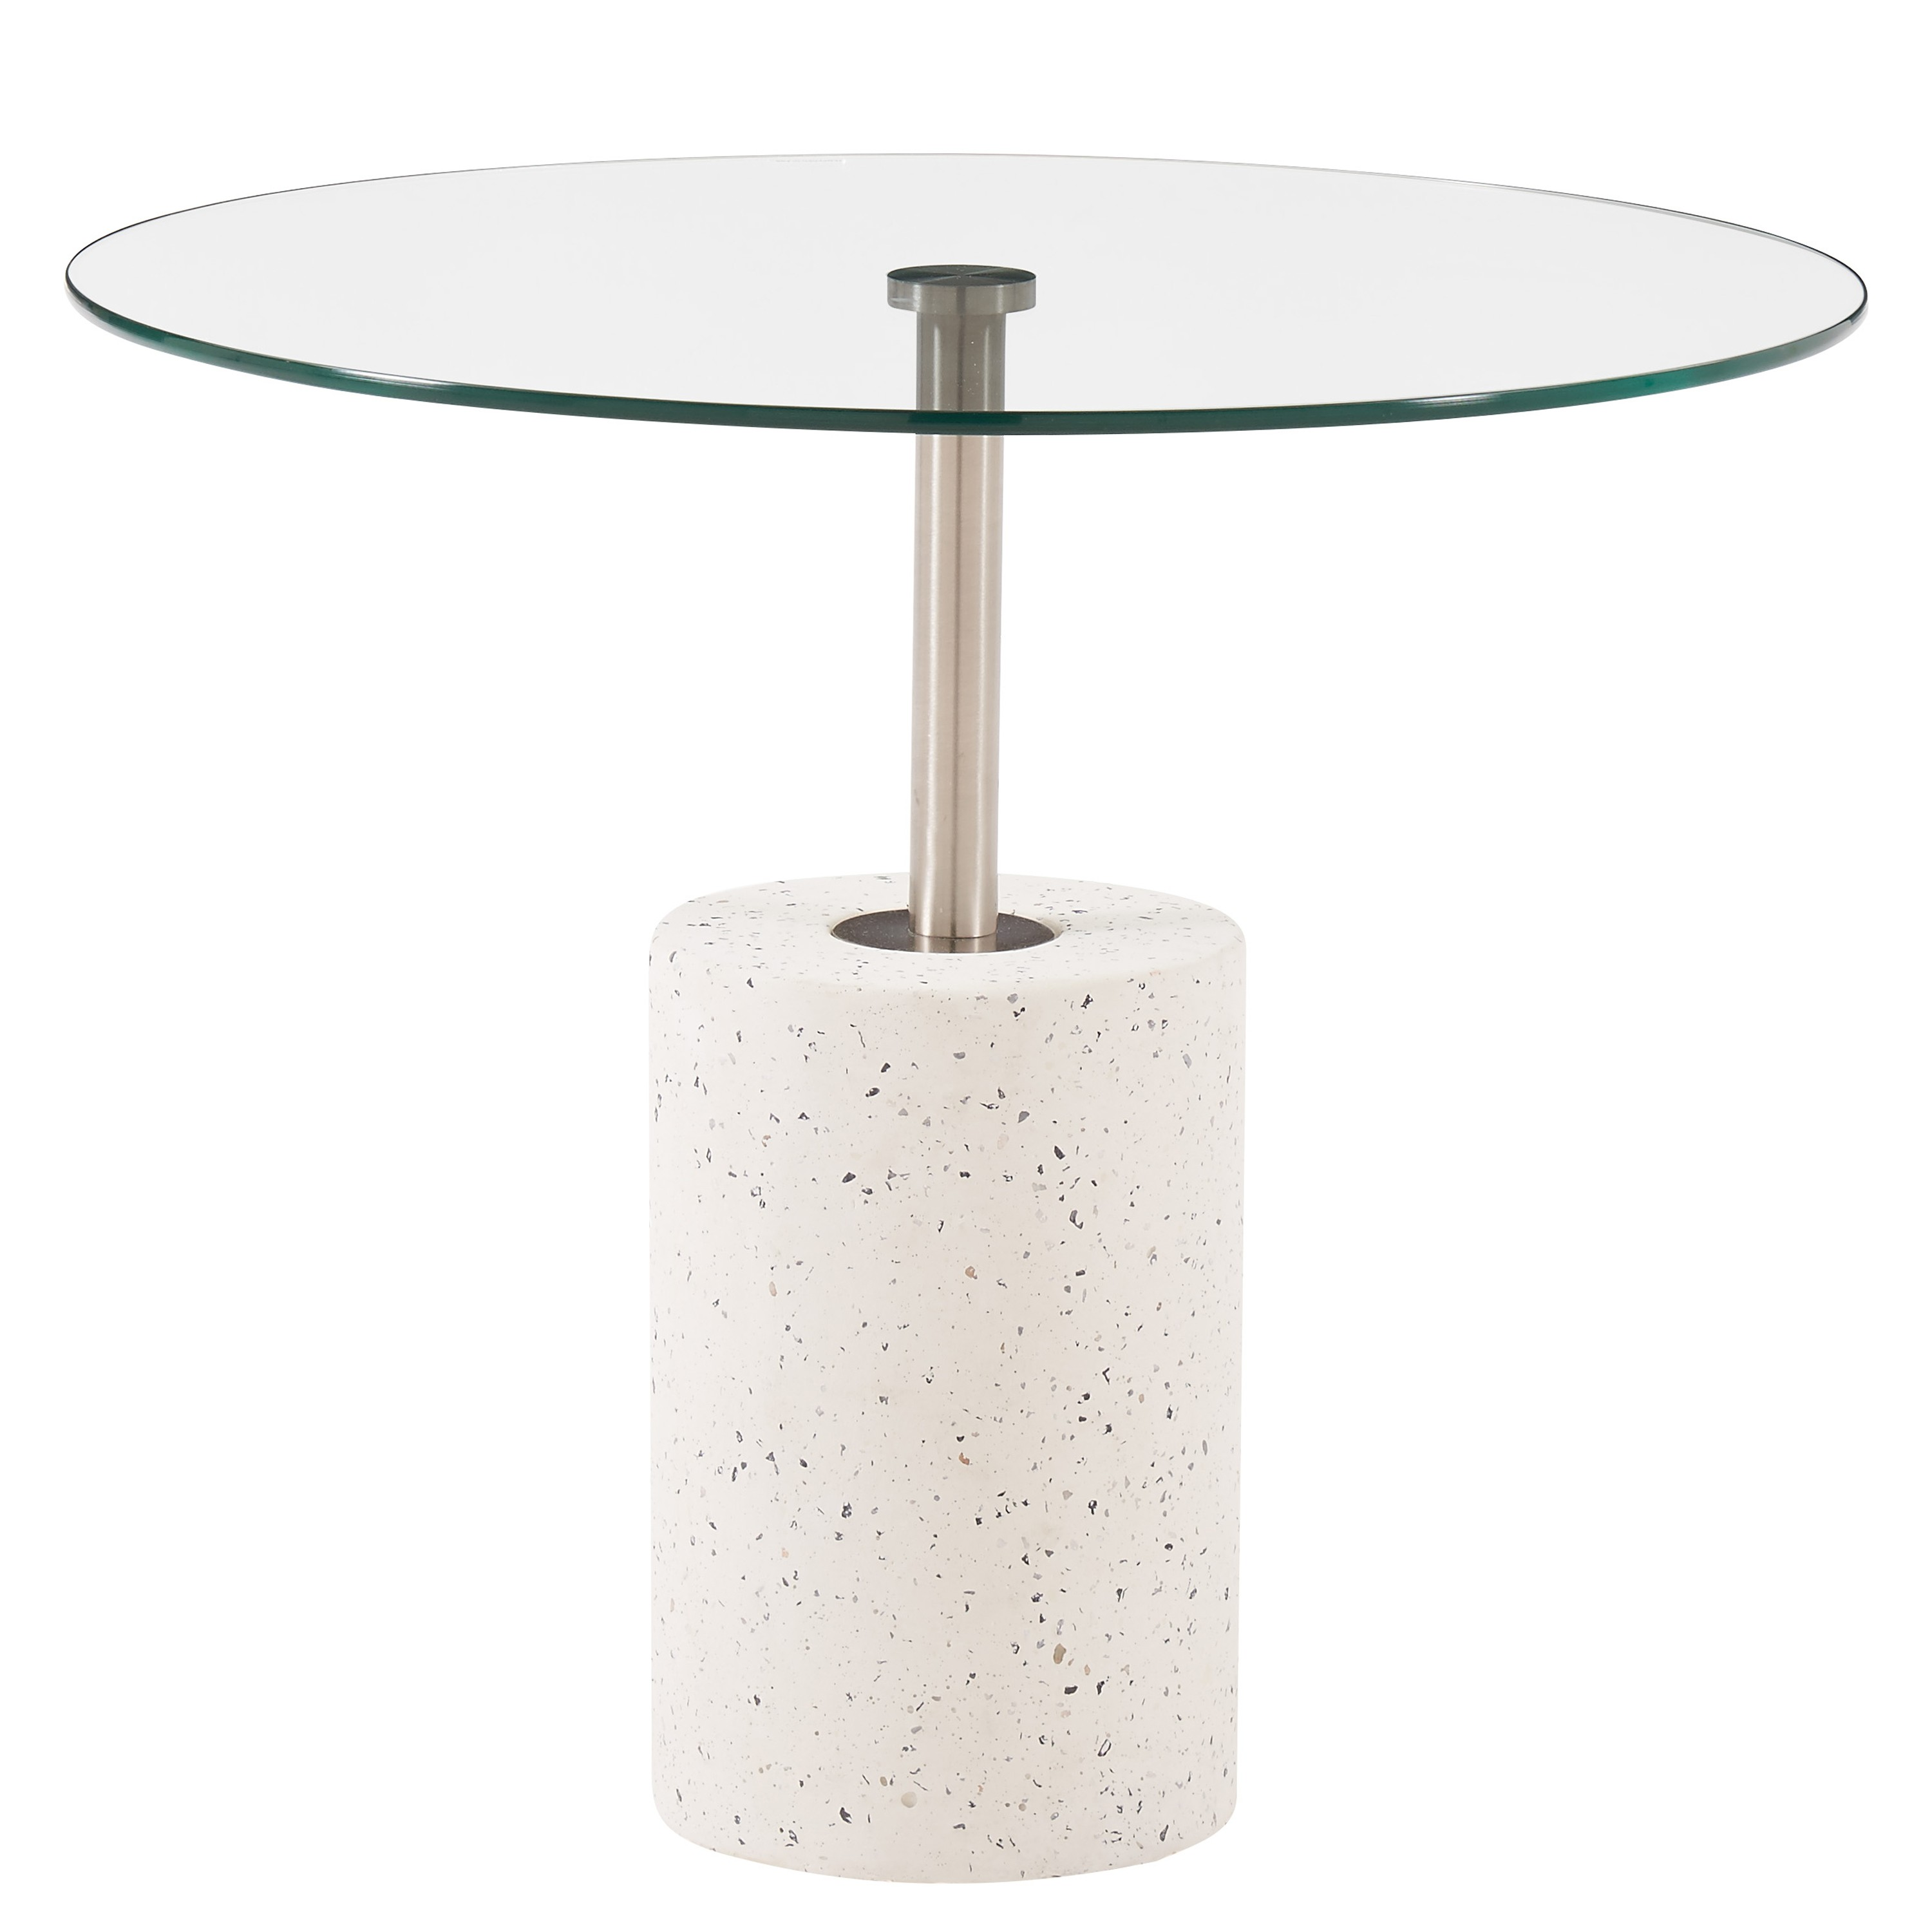 Sharon KD End Table Glass Top With White Concrete Base, Transparent/1150004